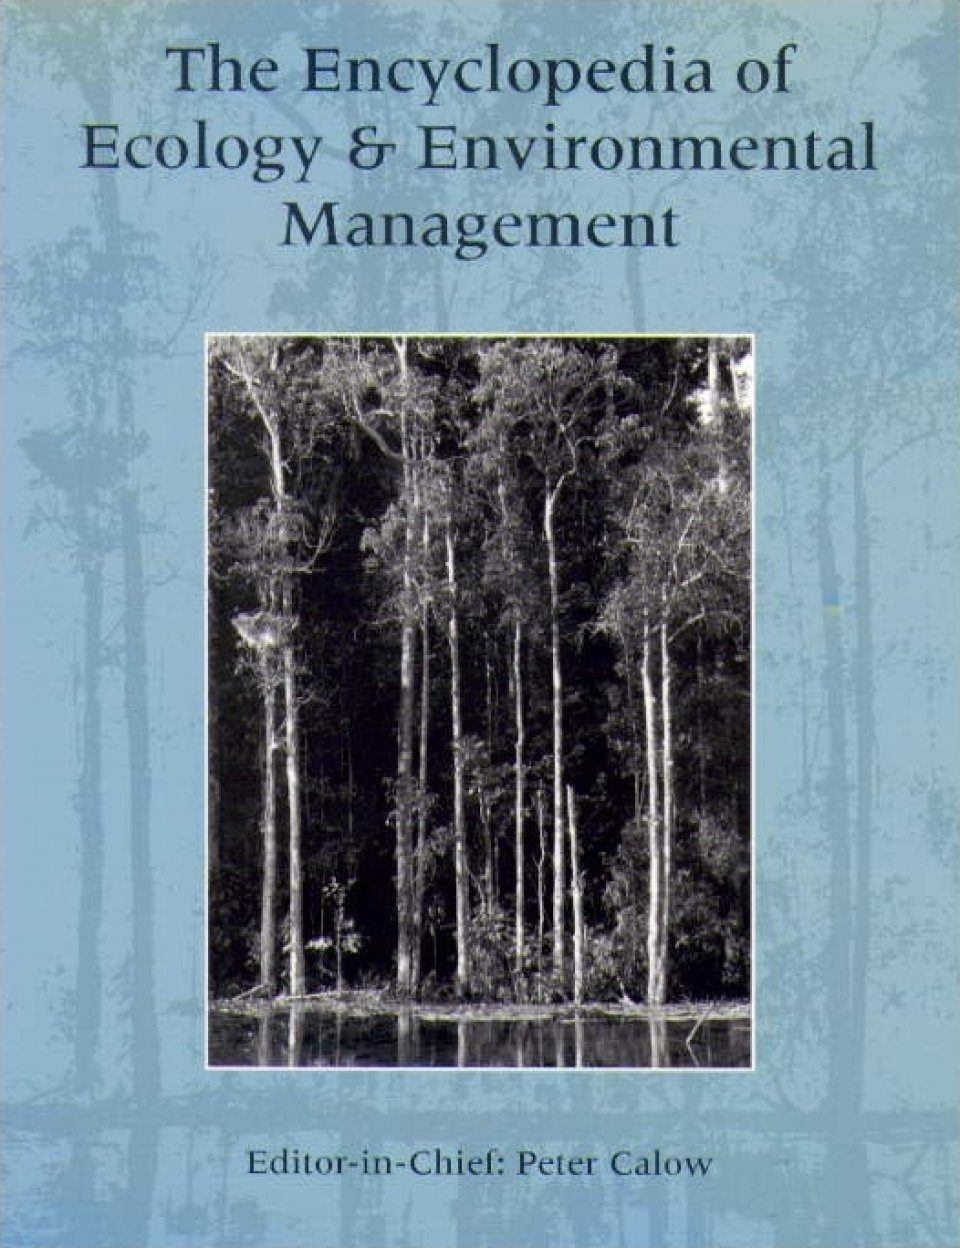 ecology and environment book pdf